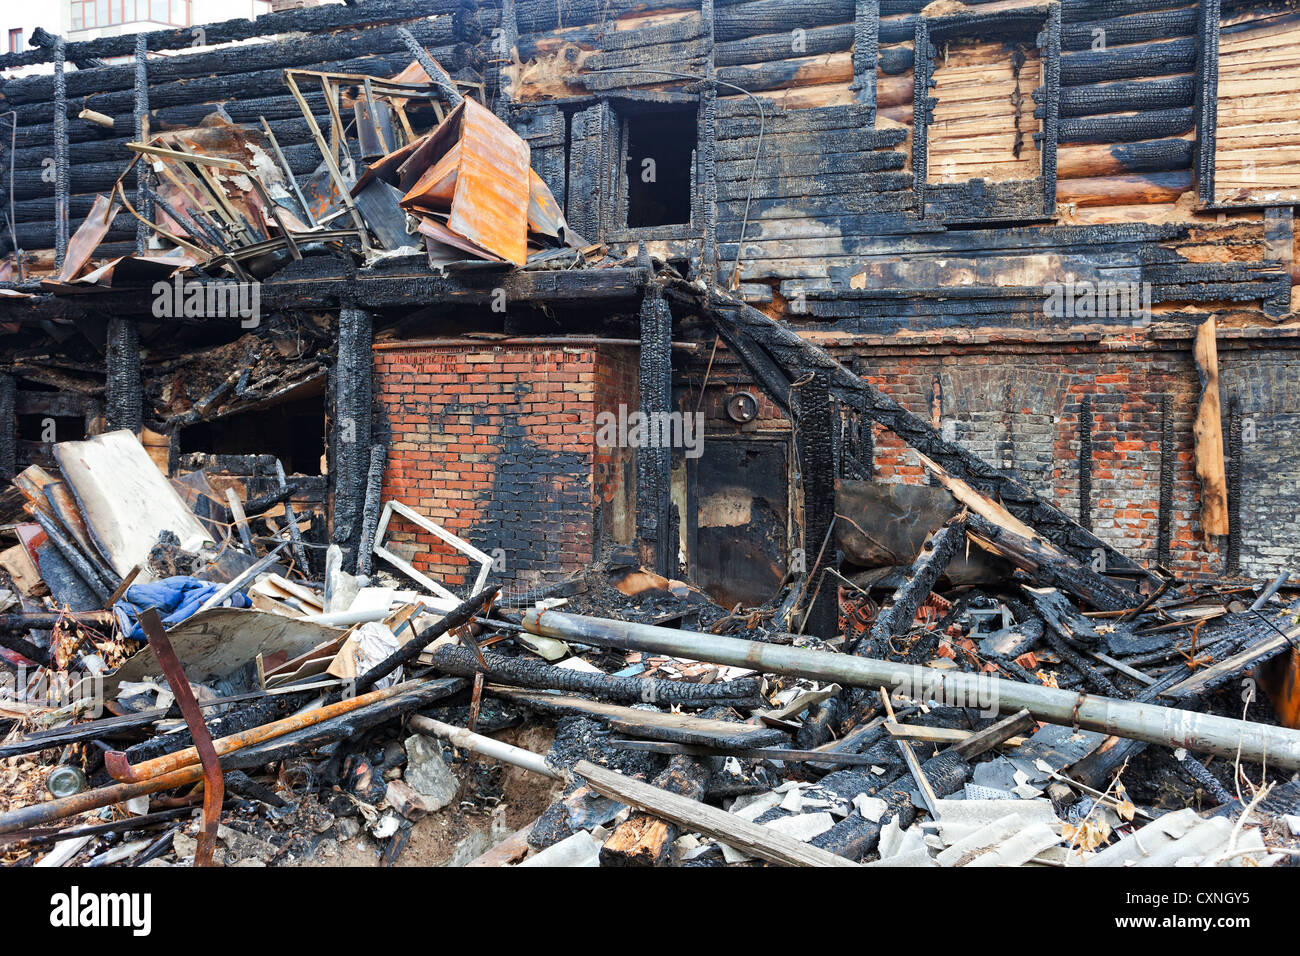 The charred ruins and remains of a burned down house - Stock Image